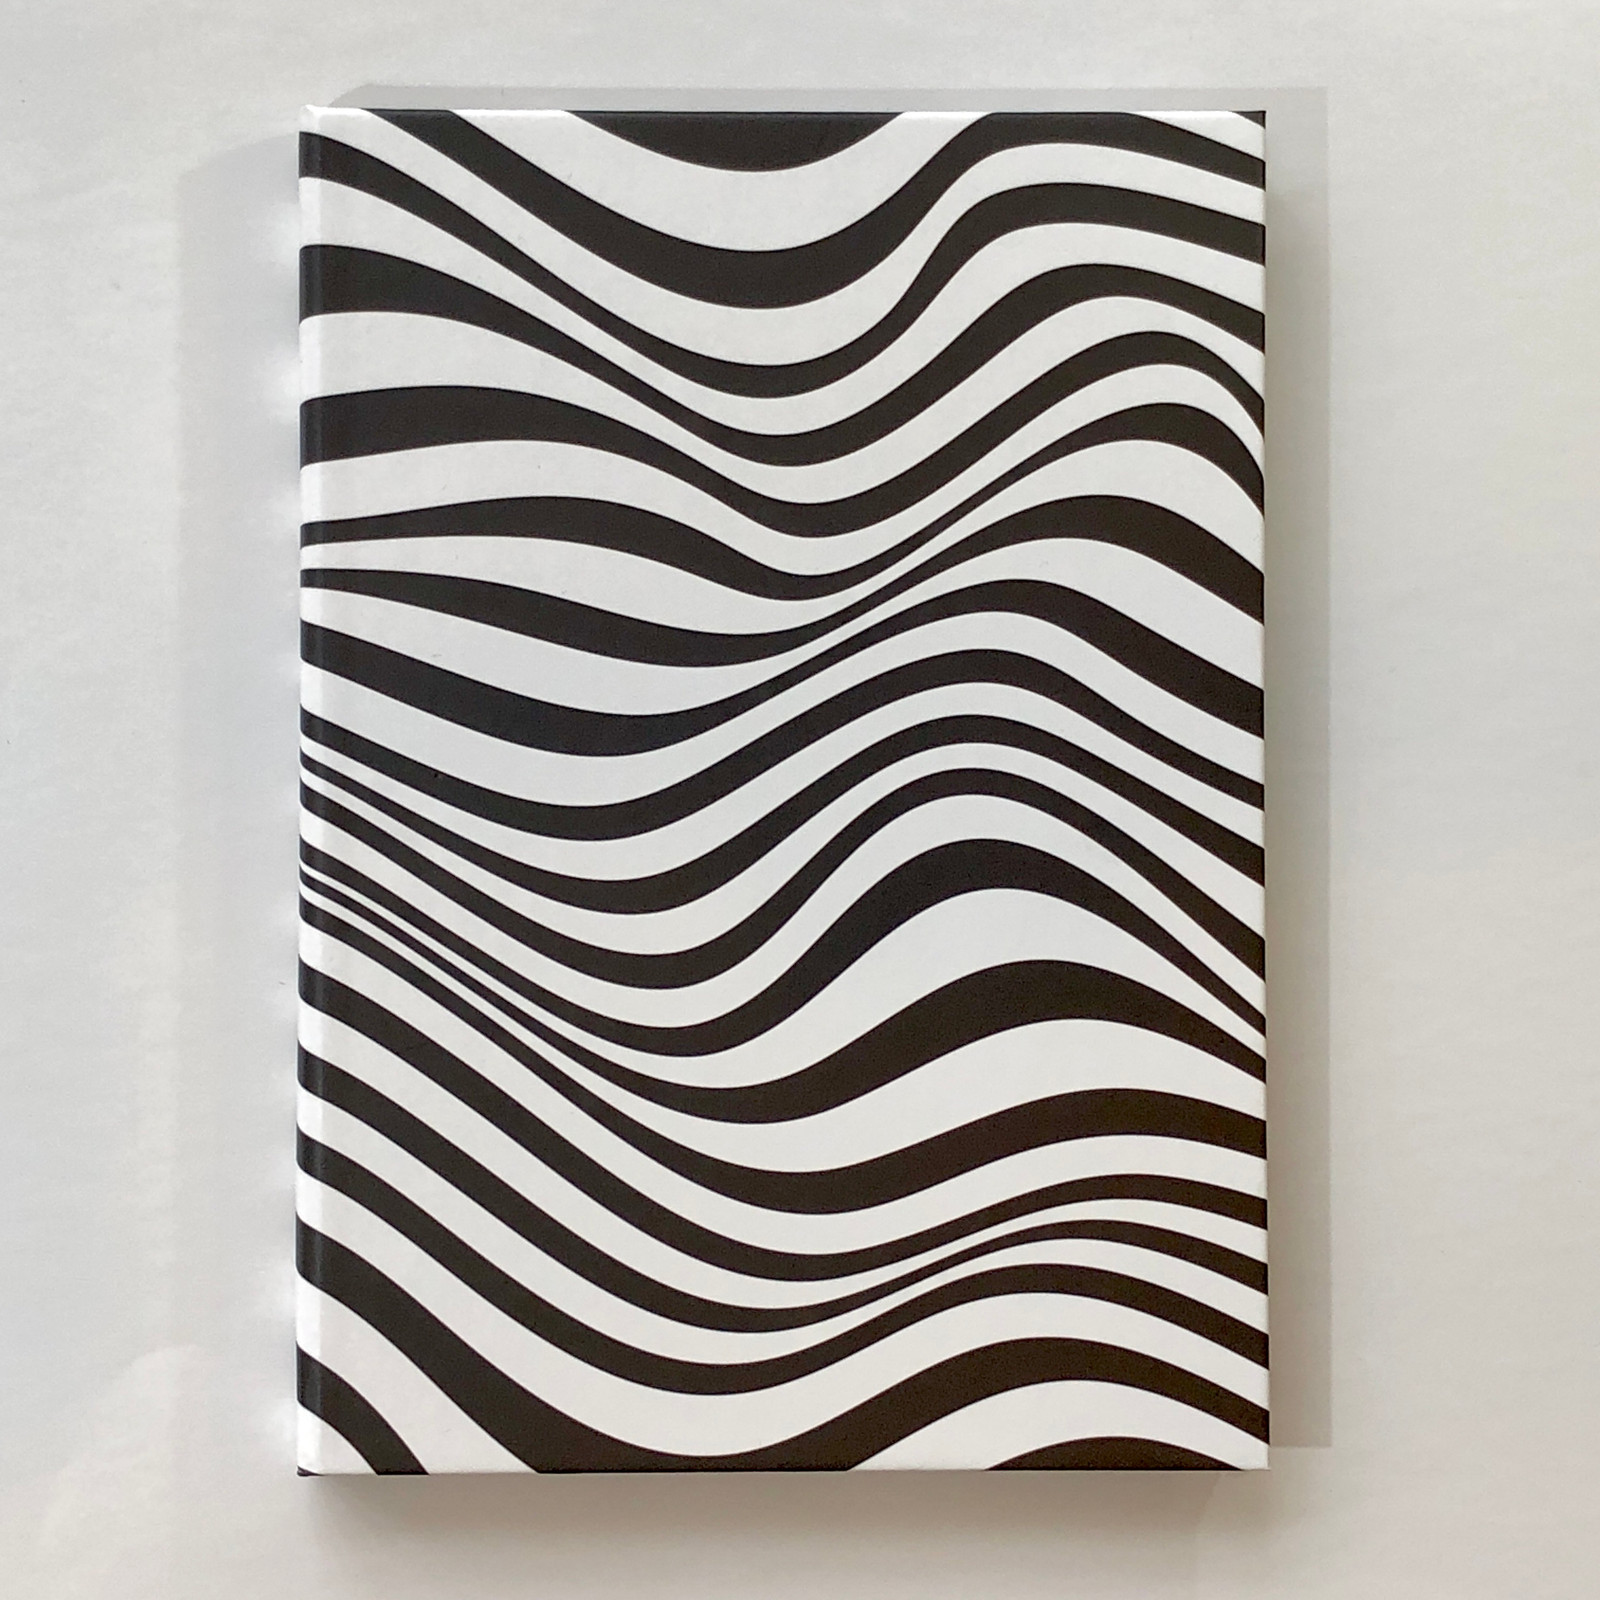 Memmo Lined Notebook - Wavy Lines